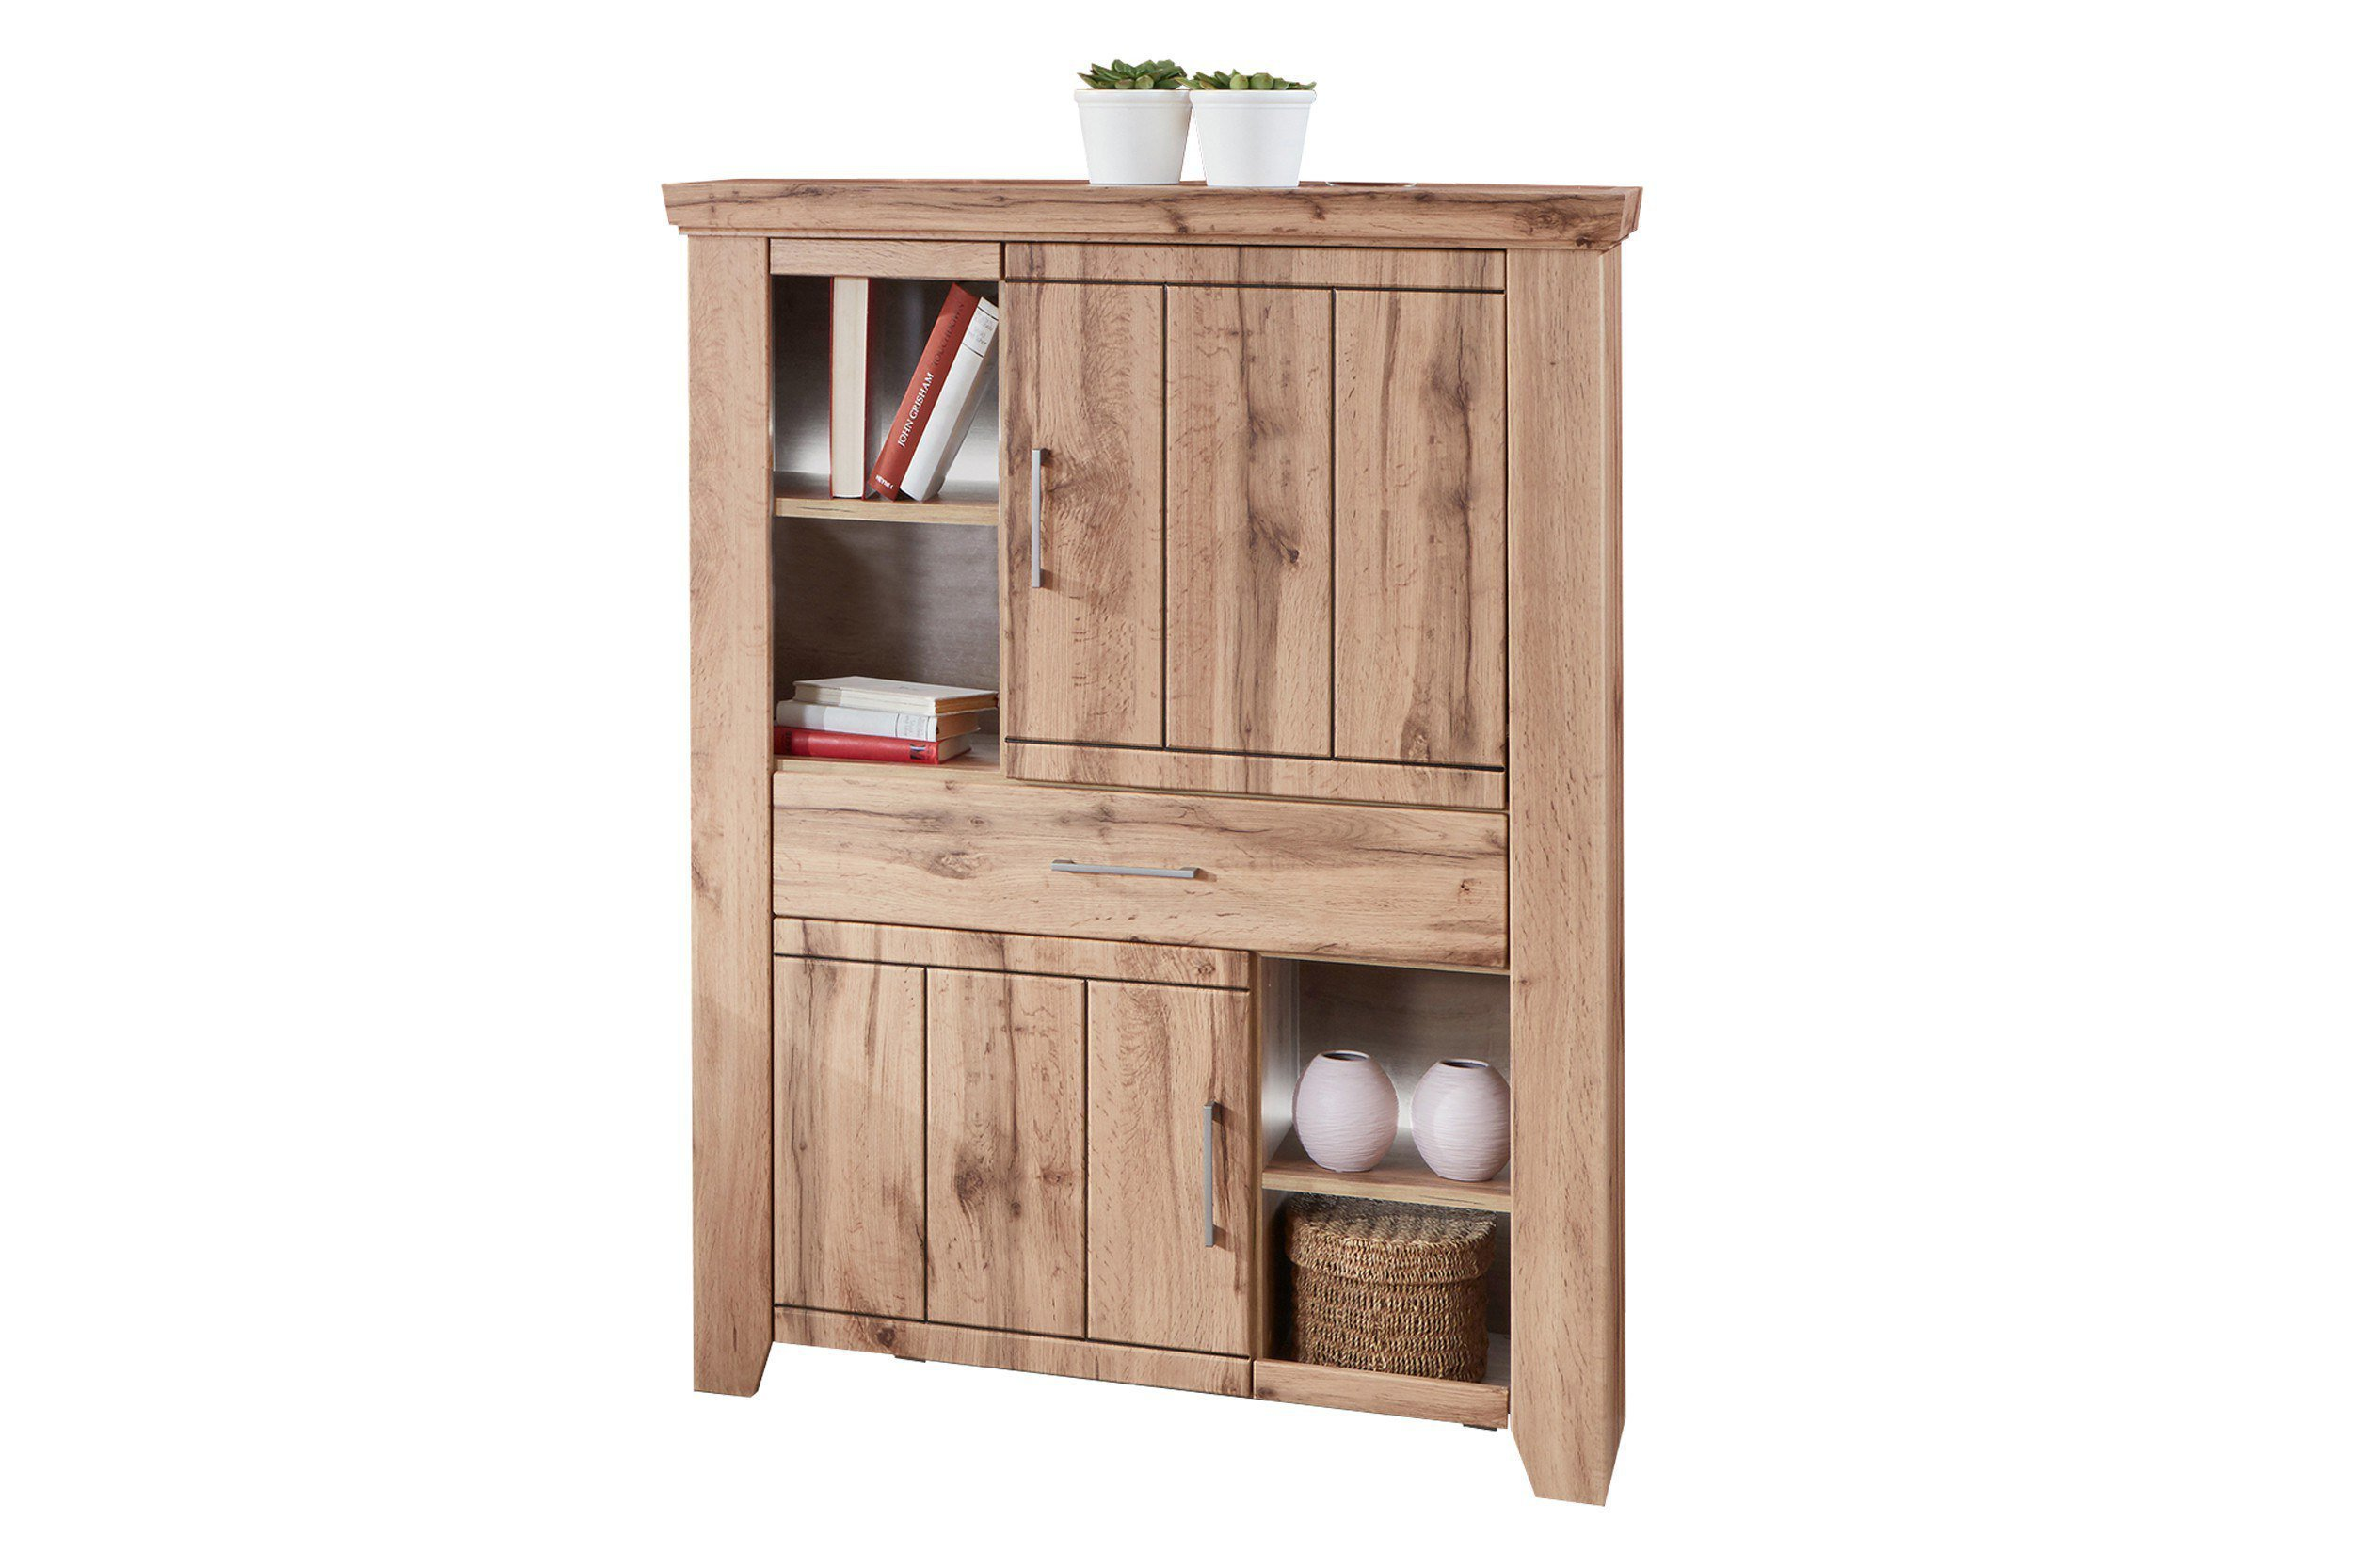 Möbel Discounter Online Shop Ideal Möbel Highboard Stromberg Wotan Eiche Möbel Letz